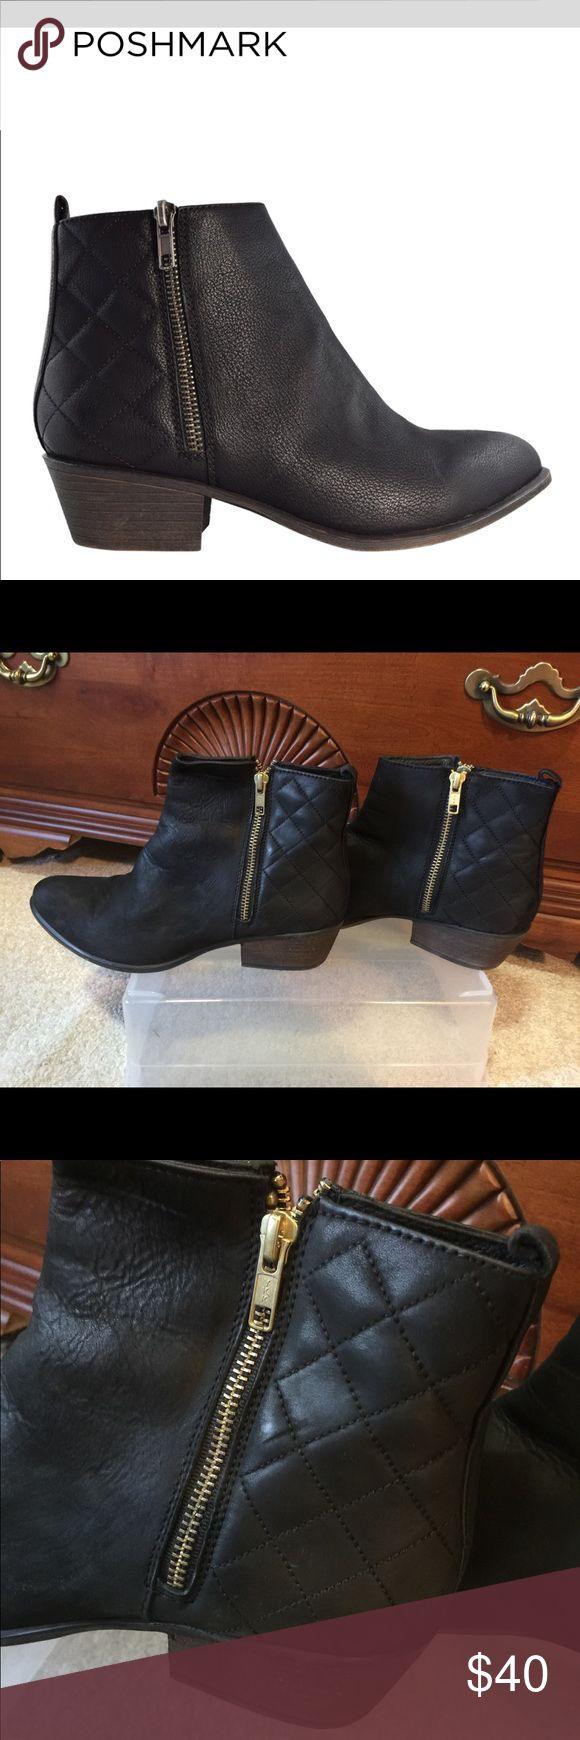 Steve Madden Black Boots Zipper Booties Leather 10 Great boots I just don't wear enough to keep. Purchased at Nordstrom. Zippers on both sides for ease of entry. Suede front. Quilted back.   In excellent shape Steve Madden Shoes Ankle Boots & Booties